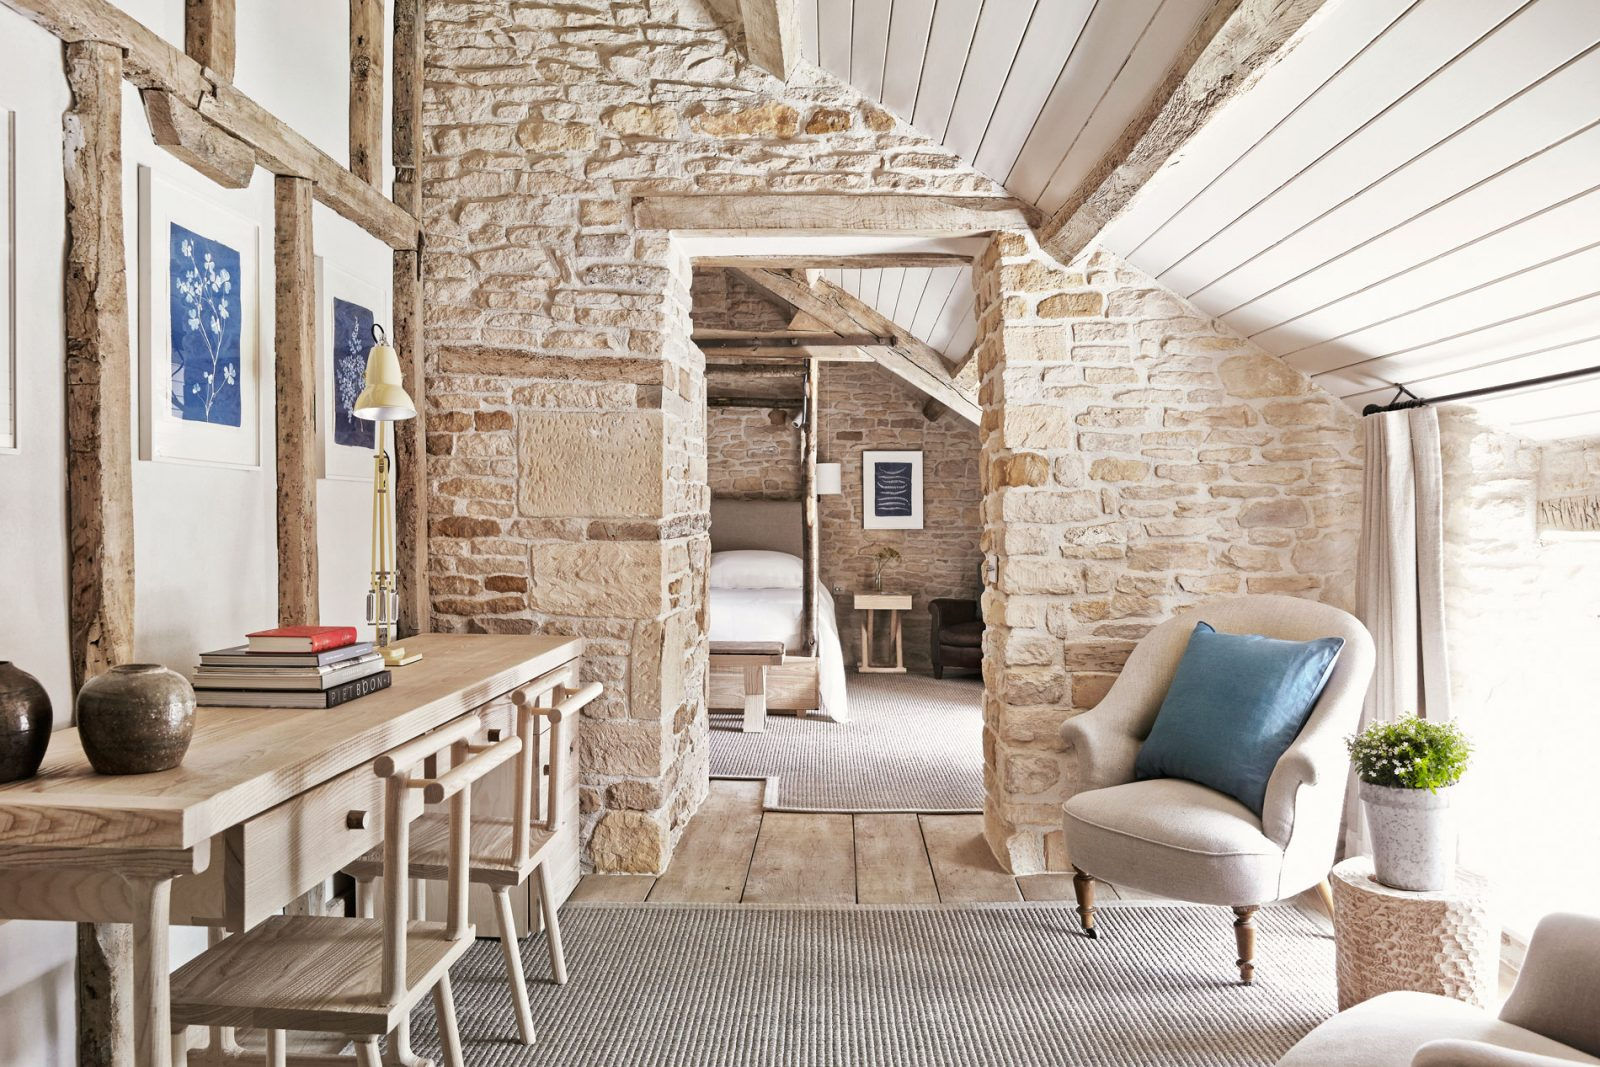 The Wild Rabbit, Kingham Pub with Rooms in Oxfordshire 14